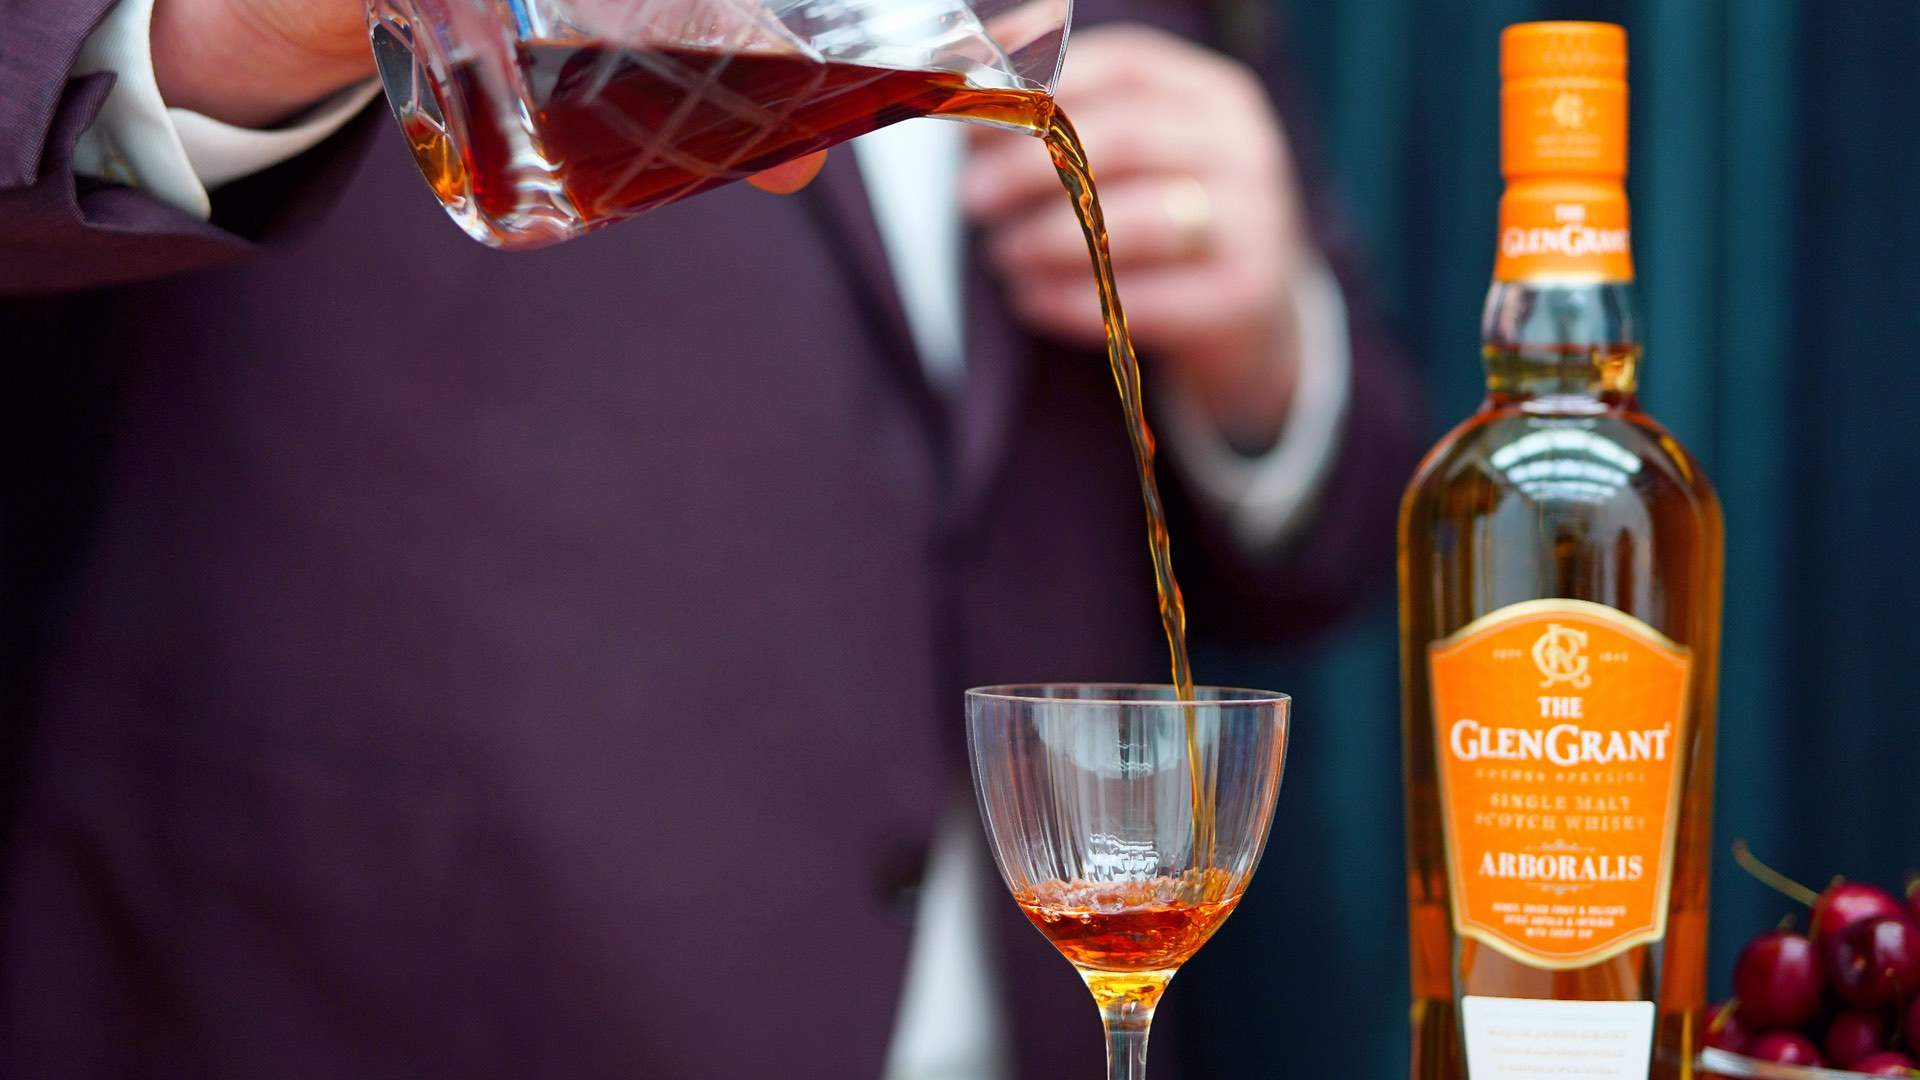 The Glen Grant Launch and World Whisky Day